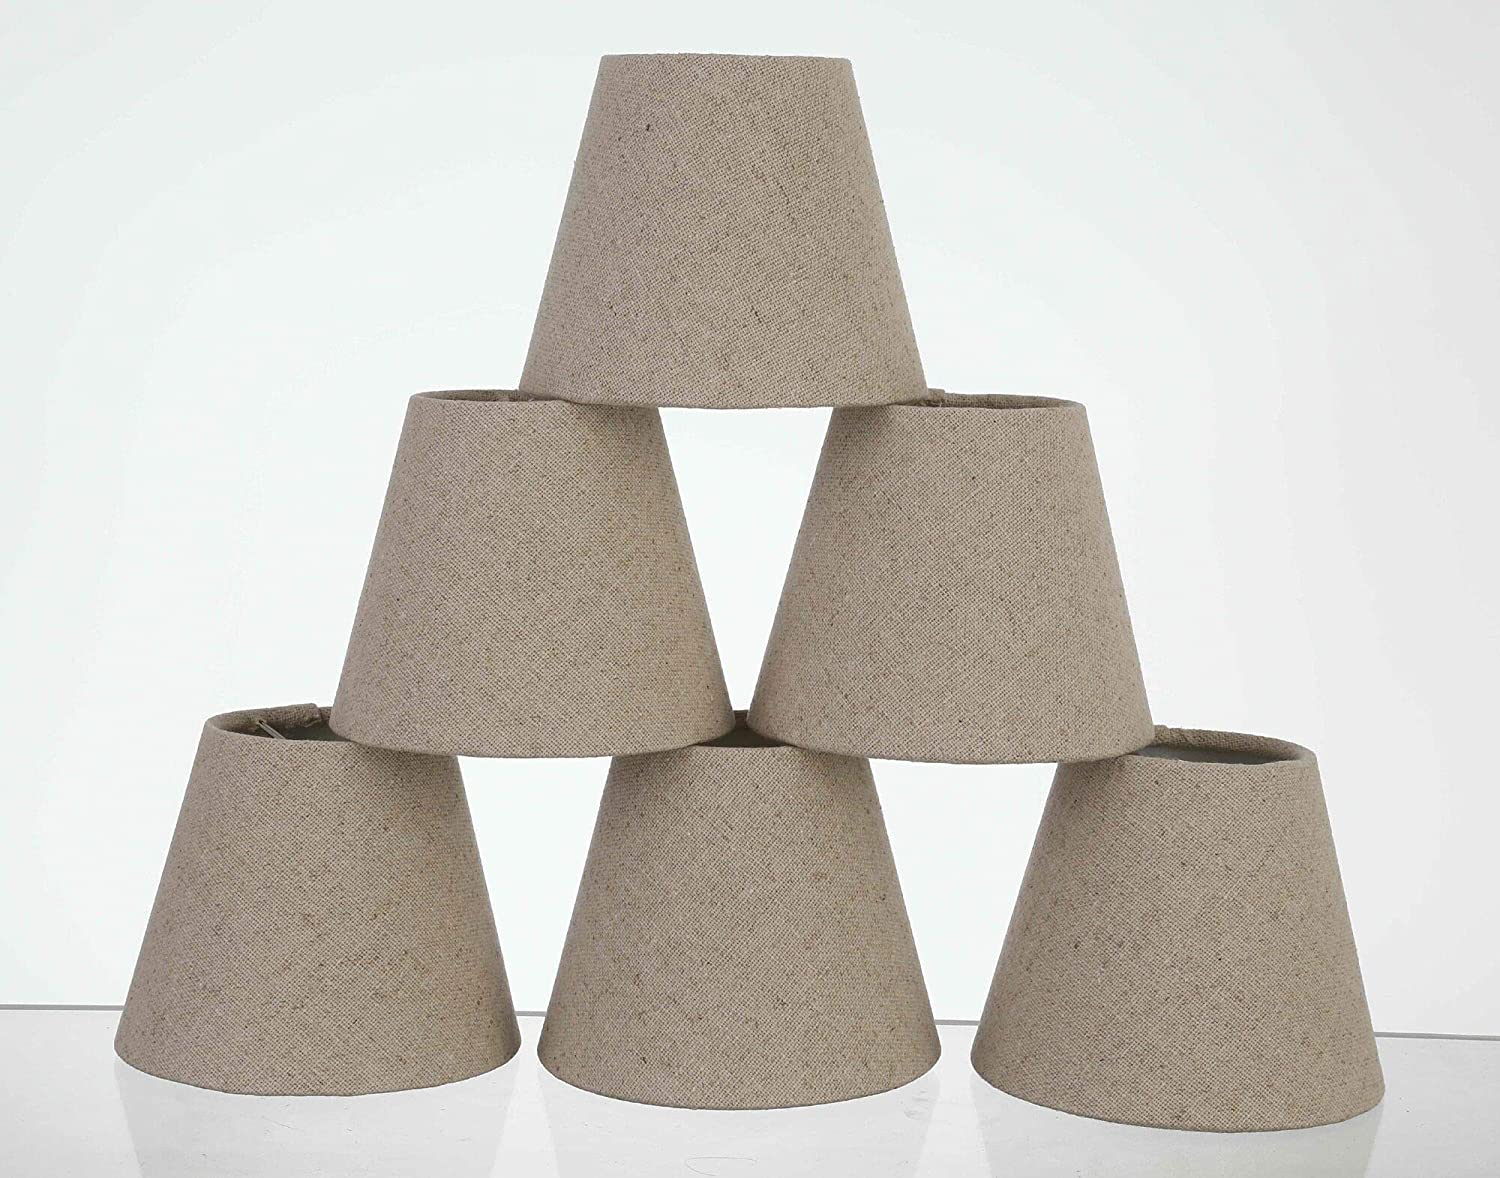 """Chandelier Shades, Clip on Dinning Room lamp Shades Hardback, Well Made lamp Shade with Pure Linen Dia 3.5'Top x 5'Bottom x 5""""H (Set of 6 Pure Linen, 3.5x5x5)"""